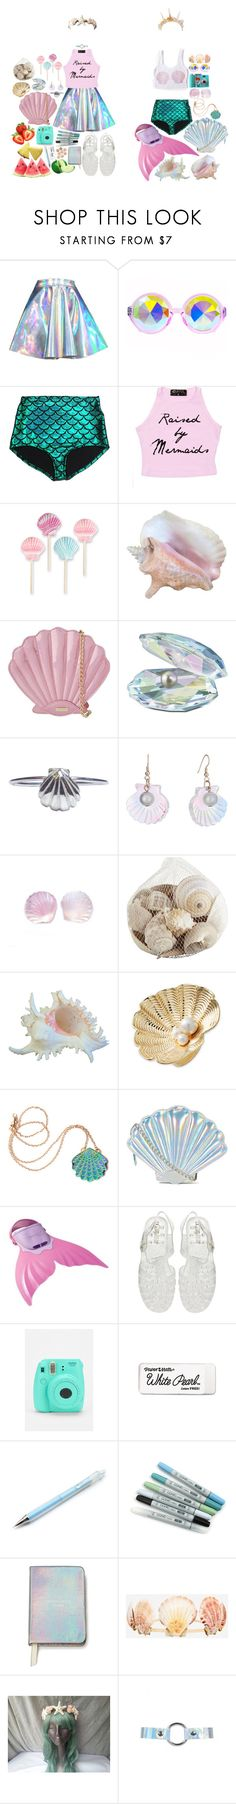 """Adopted by mermaids"" by sw-13 ❤ liked on Polyvore featuring H0les, Skinnydip, Swarovski, momocreatura, Tatty Devine, Pier 1 Imports, Kate Spade, Rosita Bonita, New Look and Fujifilm"